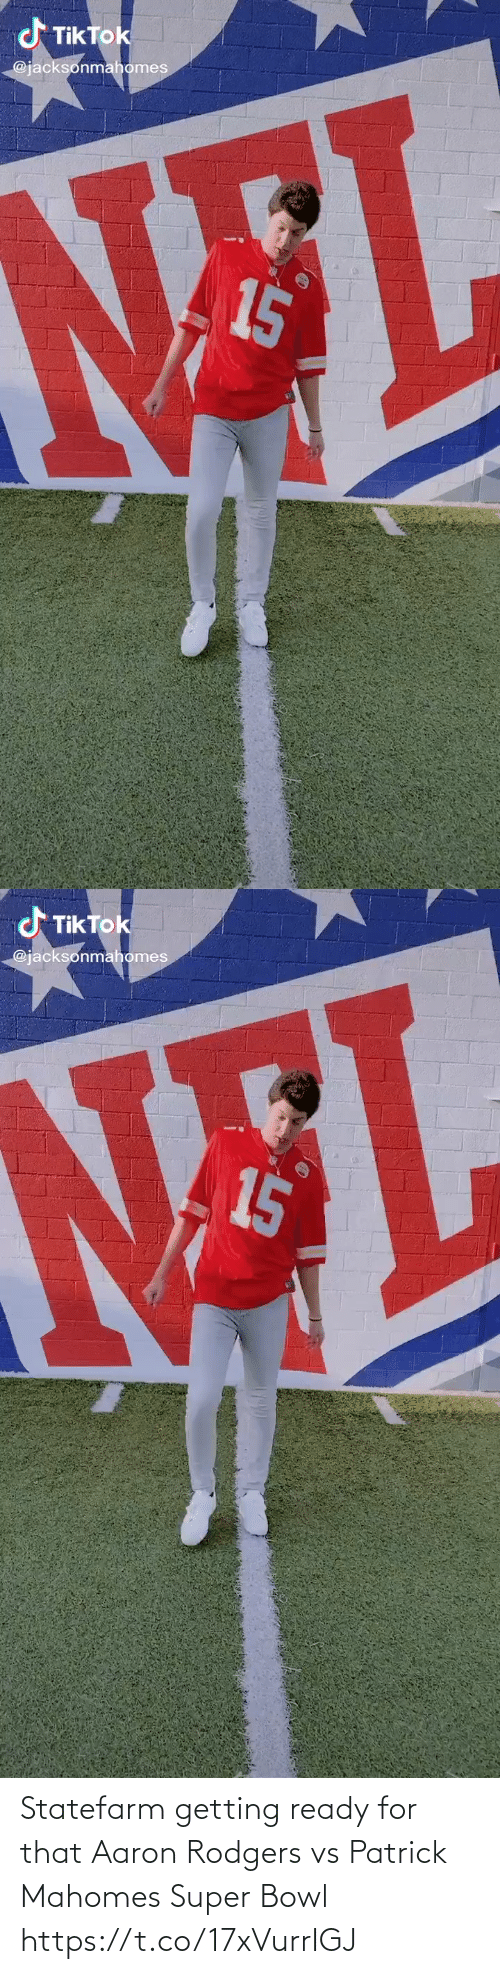 Aaron Rodgers: Statefarm getting ready for that Aaron Rodgers vs Patrick Mahomes Super Bowl https://t.co/17xVurrIGJ